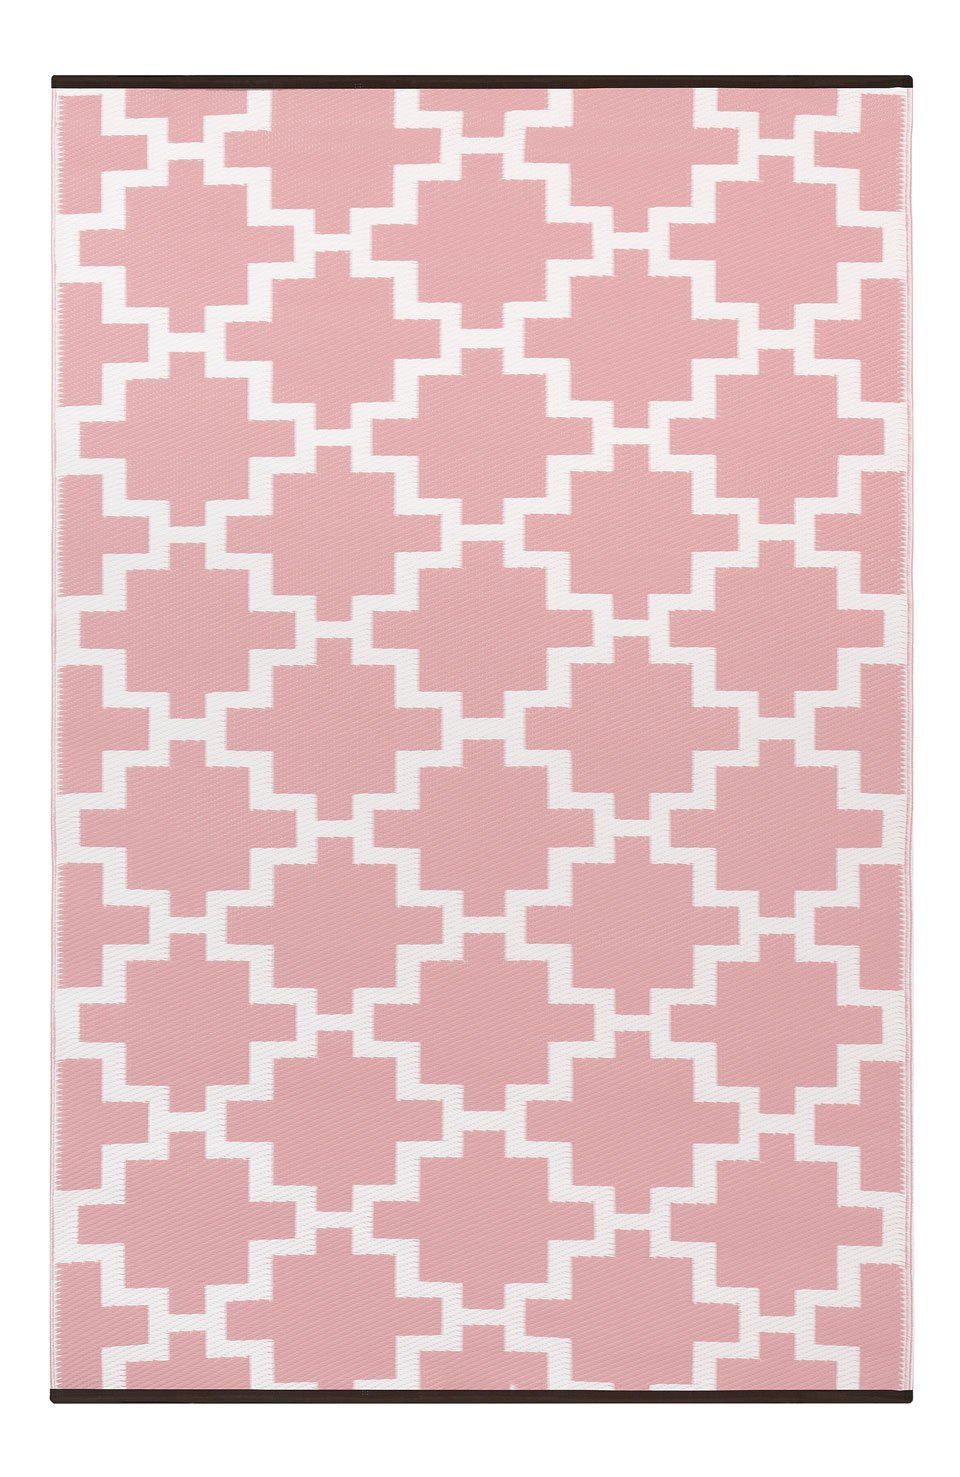 Green Decor Lightweight Indoor/Outdoor Reversible Plastic Rug Solitude, Peach Beige/Cream, 150 x 240 cm (5ft x 8ft)